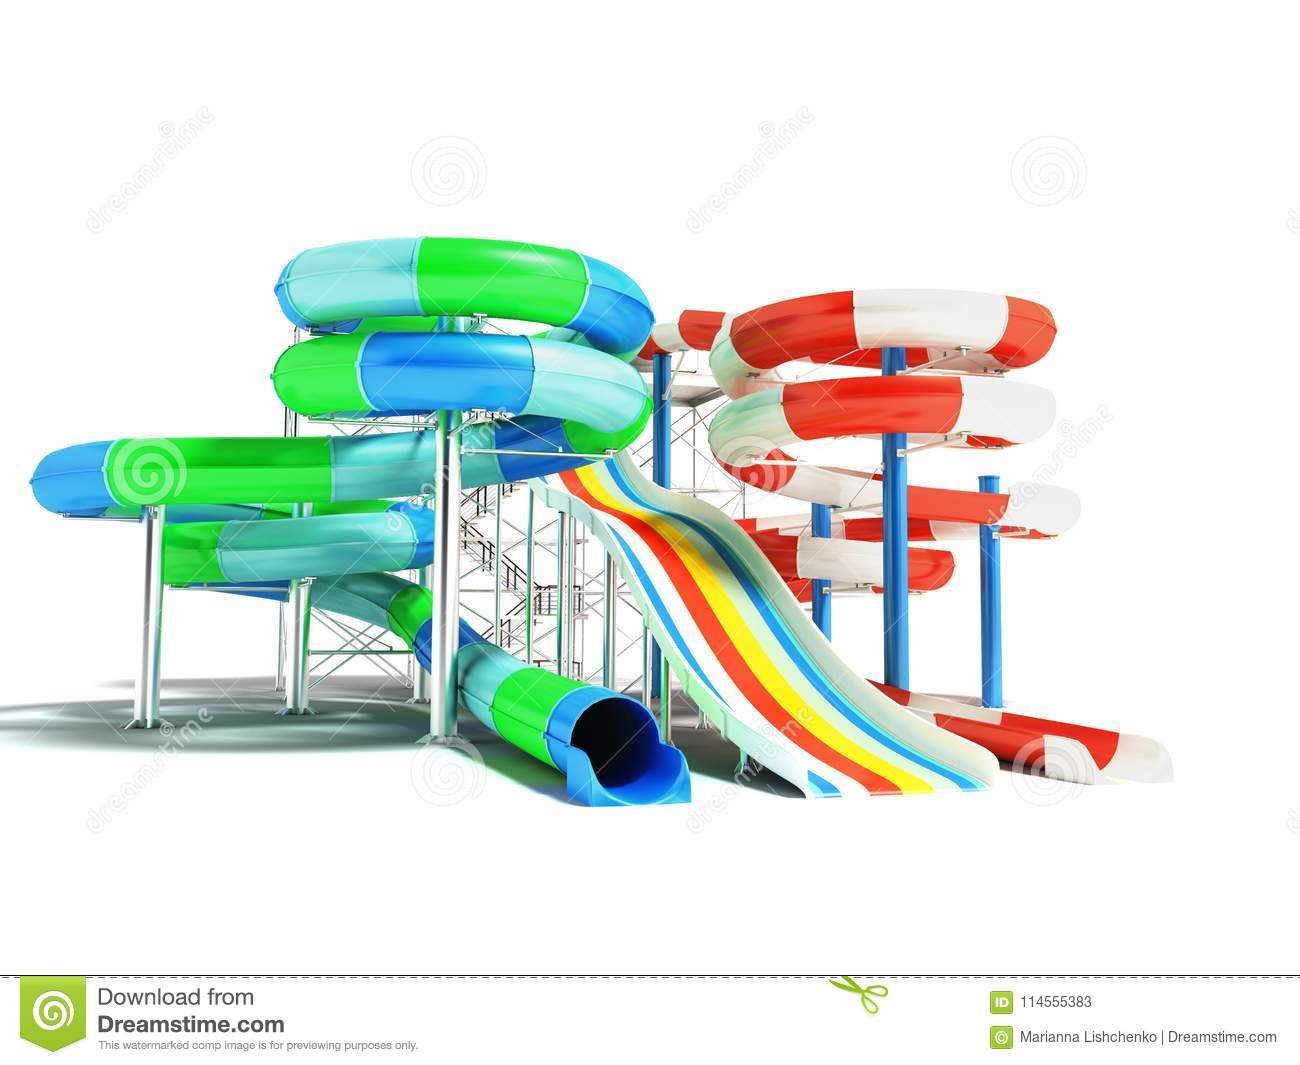 hight resolution of water attractions with spring slides and a straight hill on the